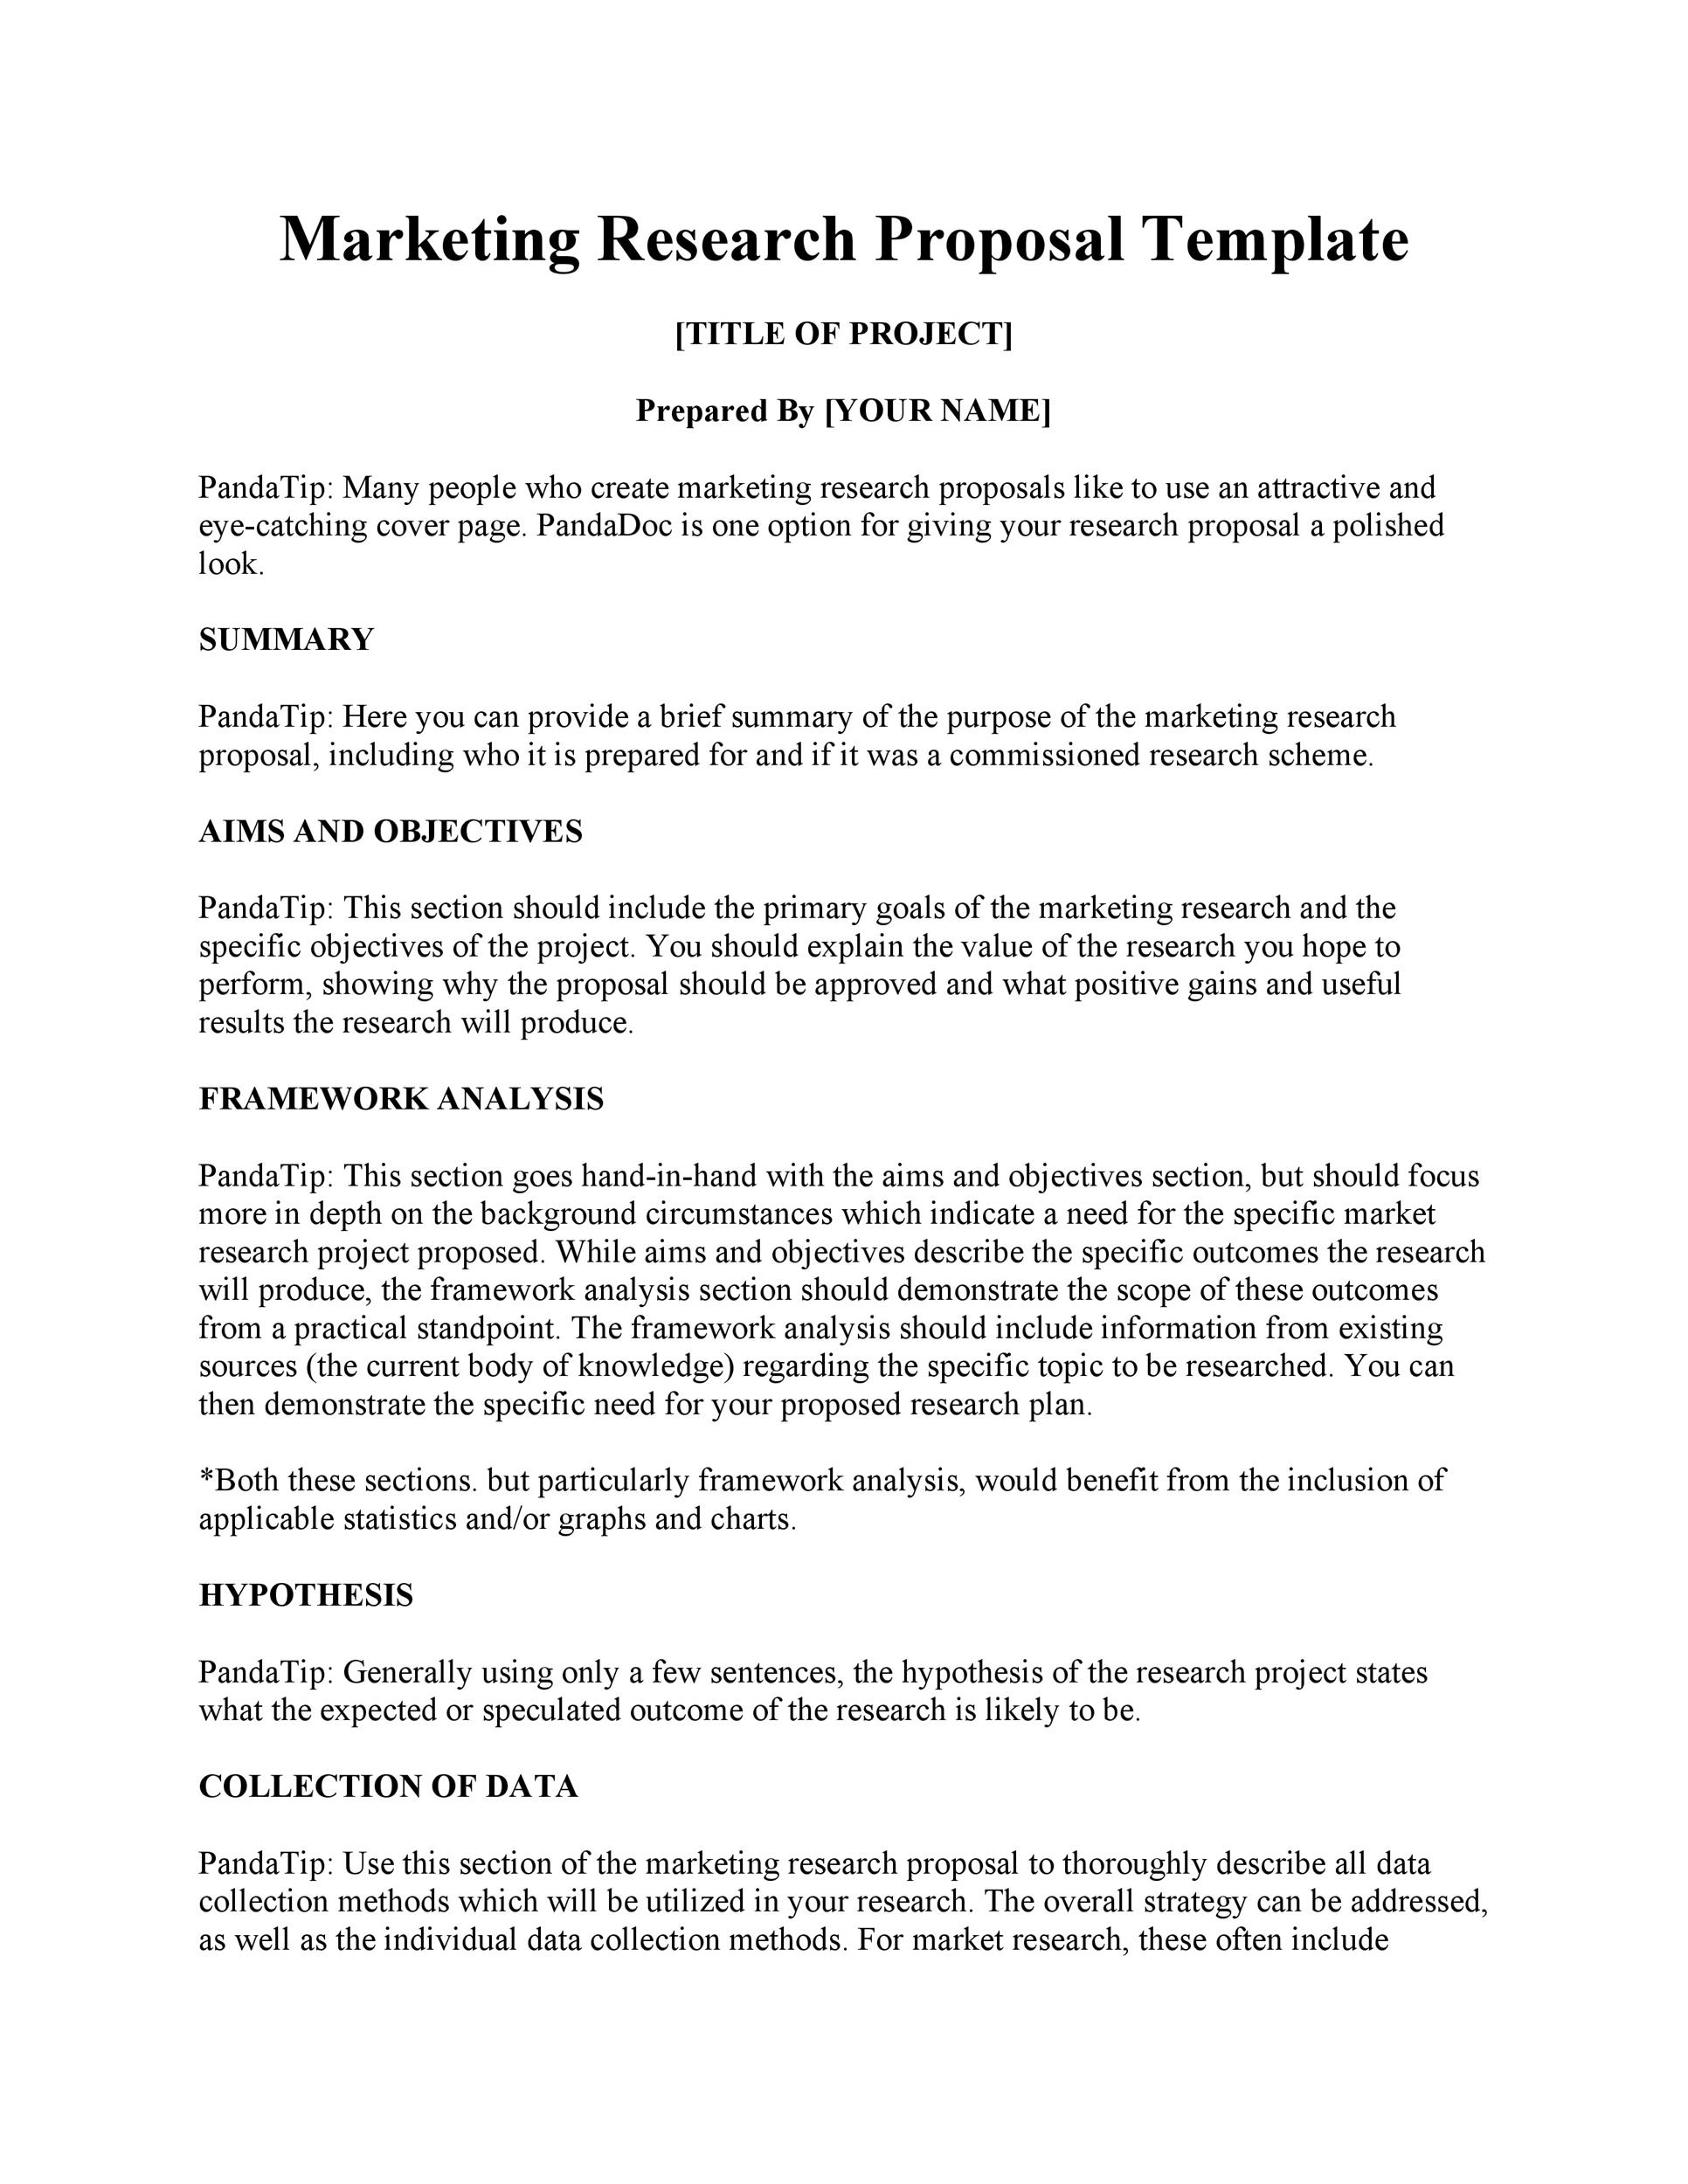 Free Research Proposal Template 39